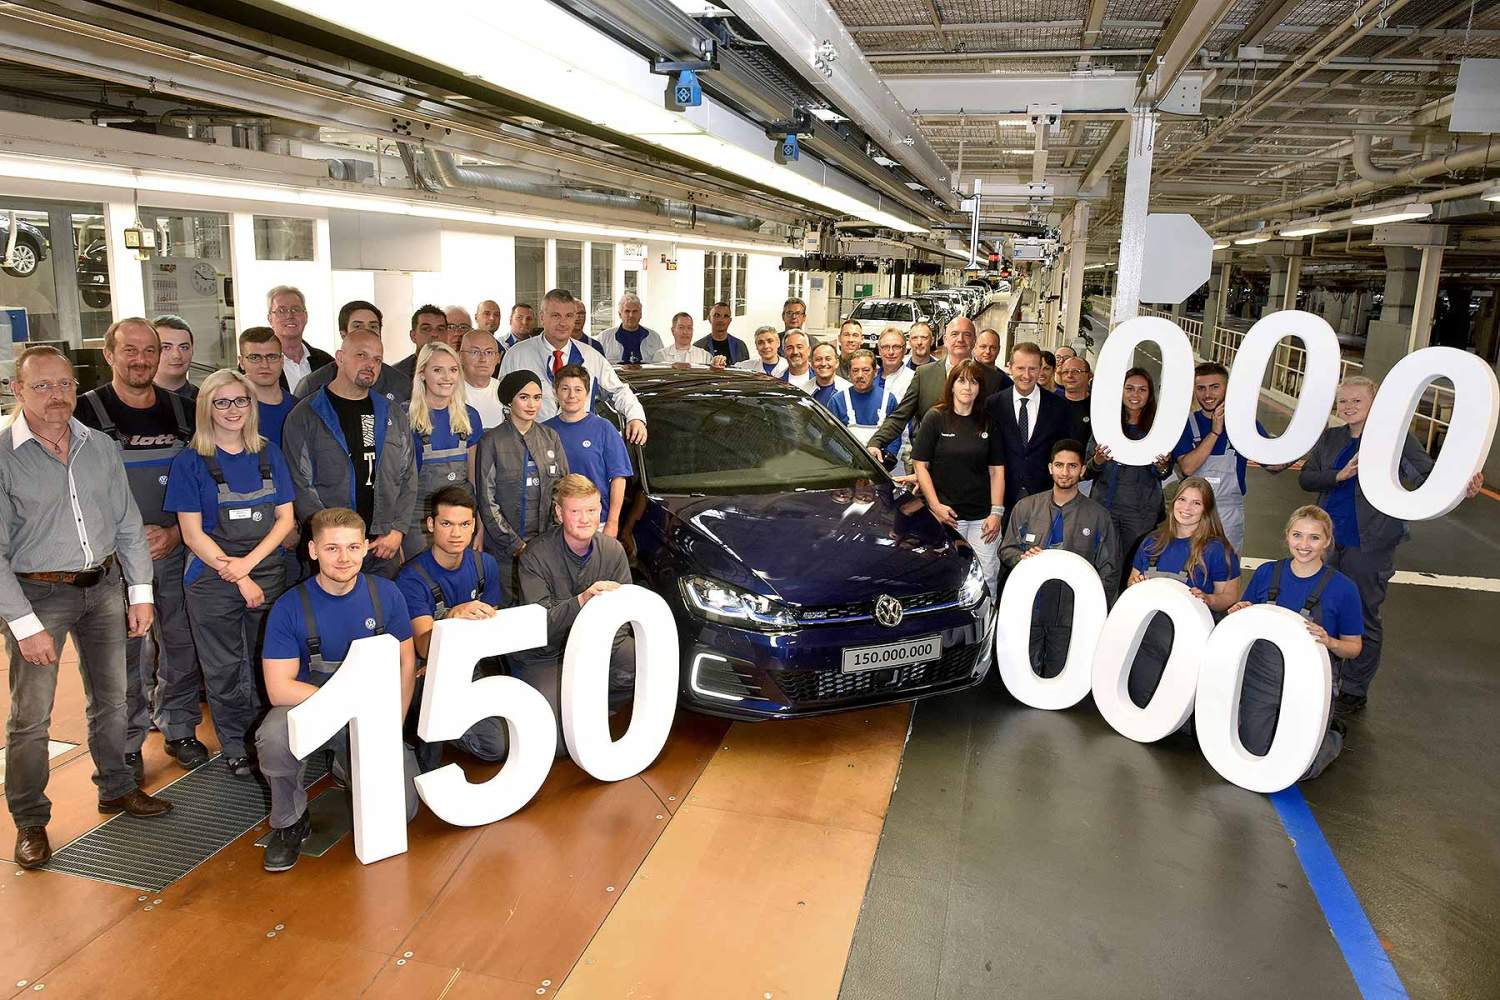 Volkswagen 150 million